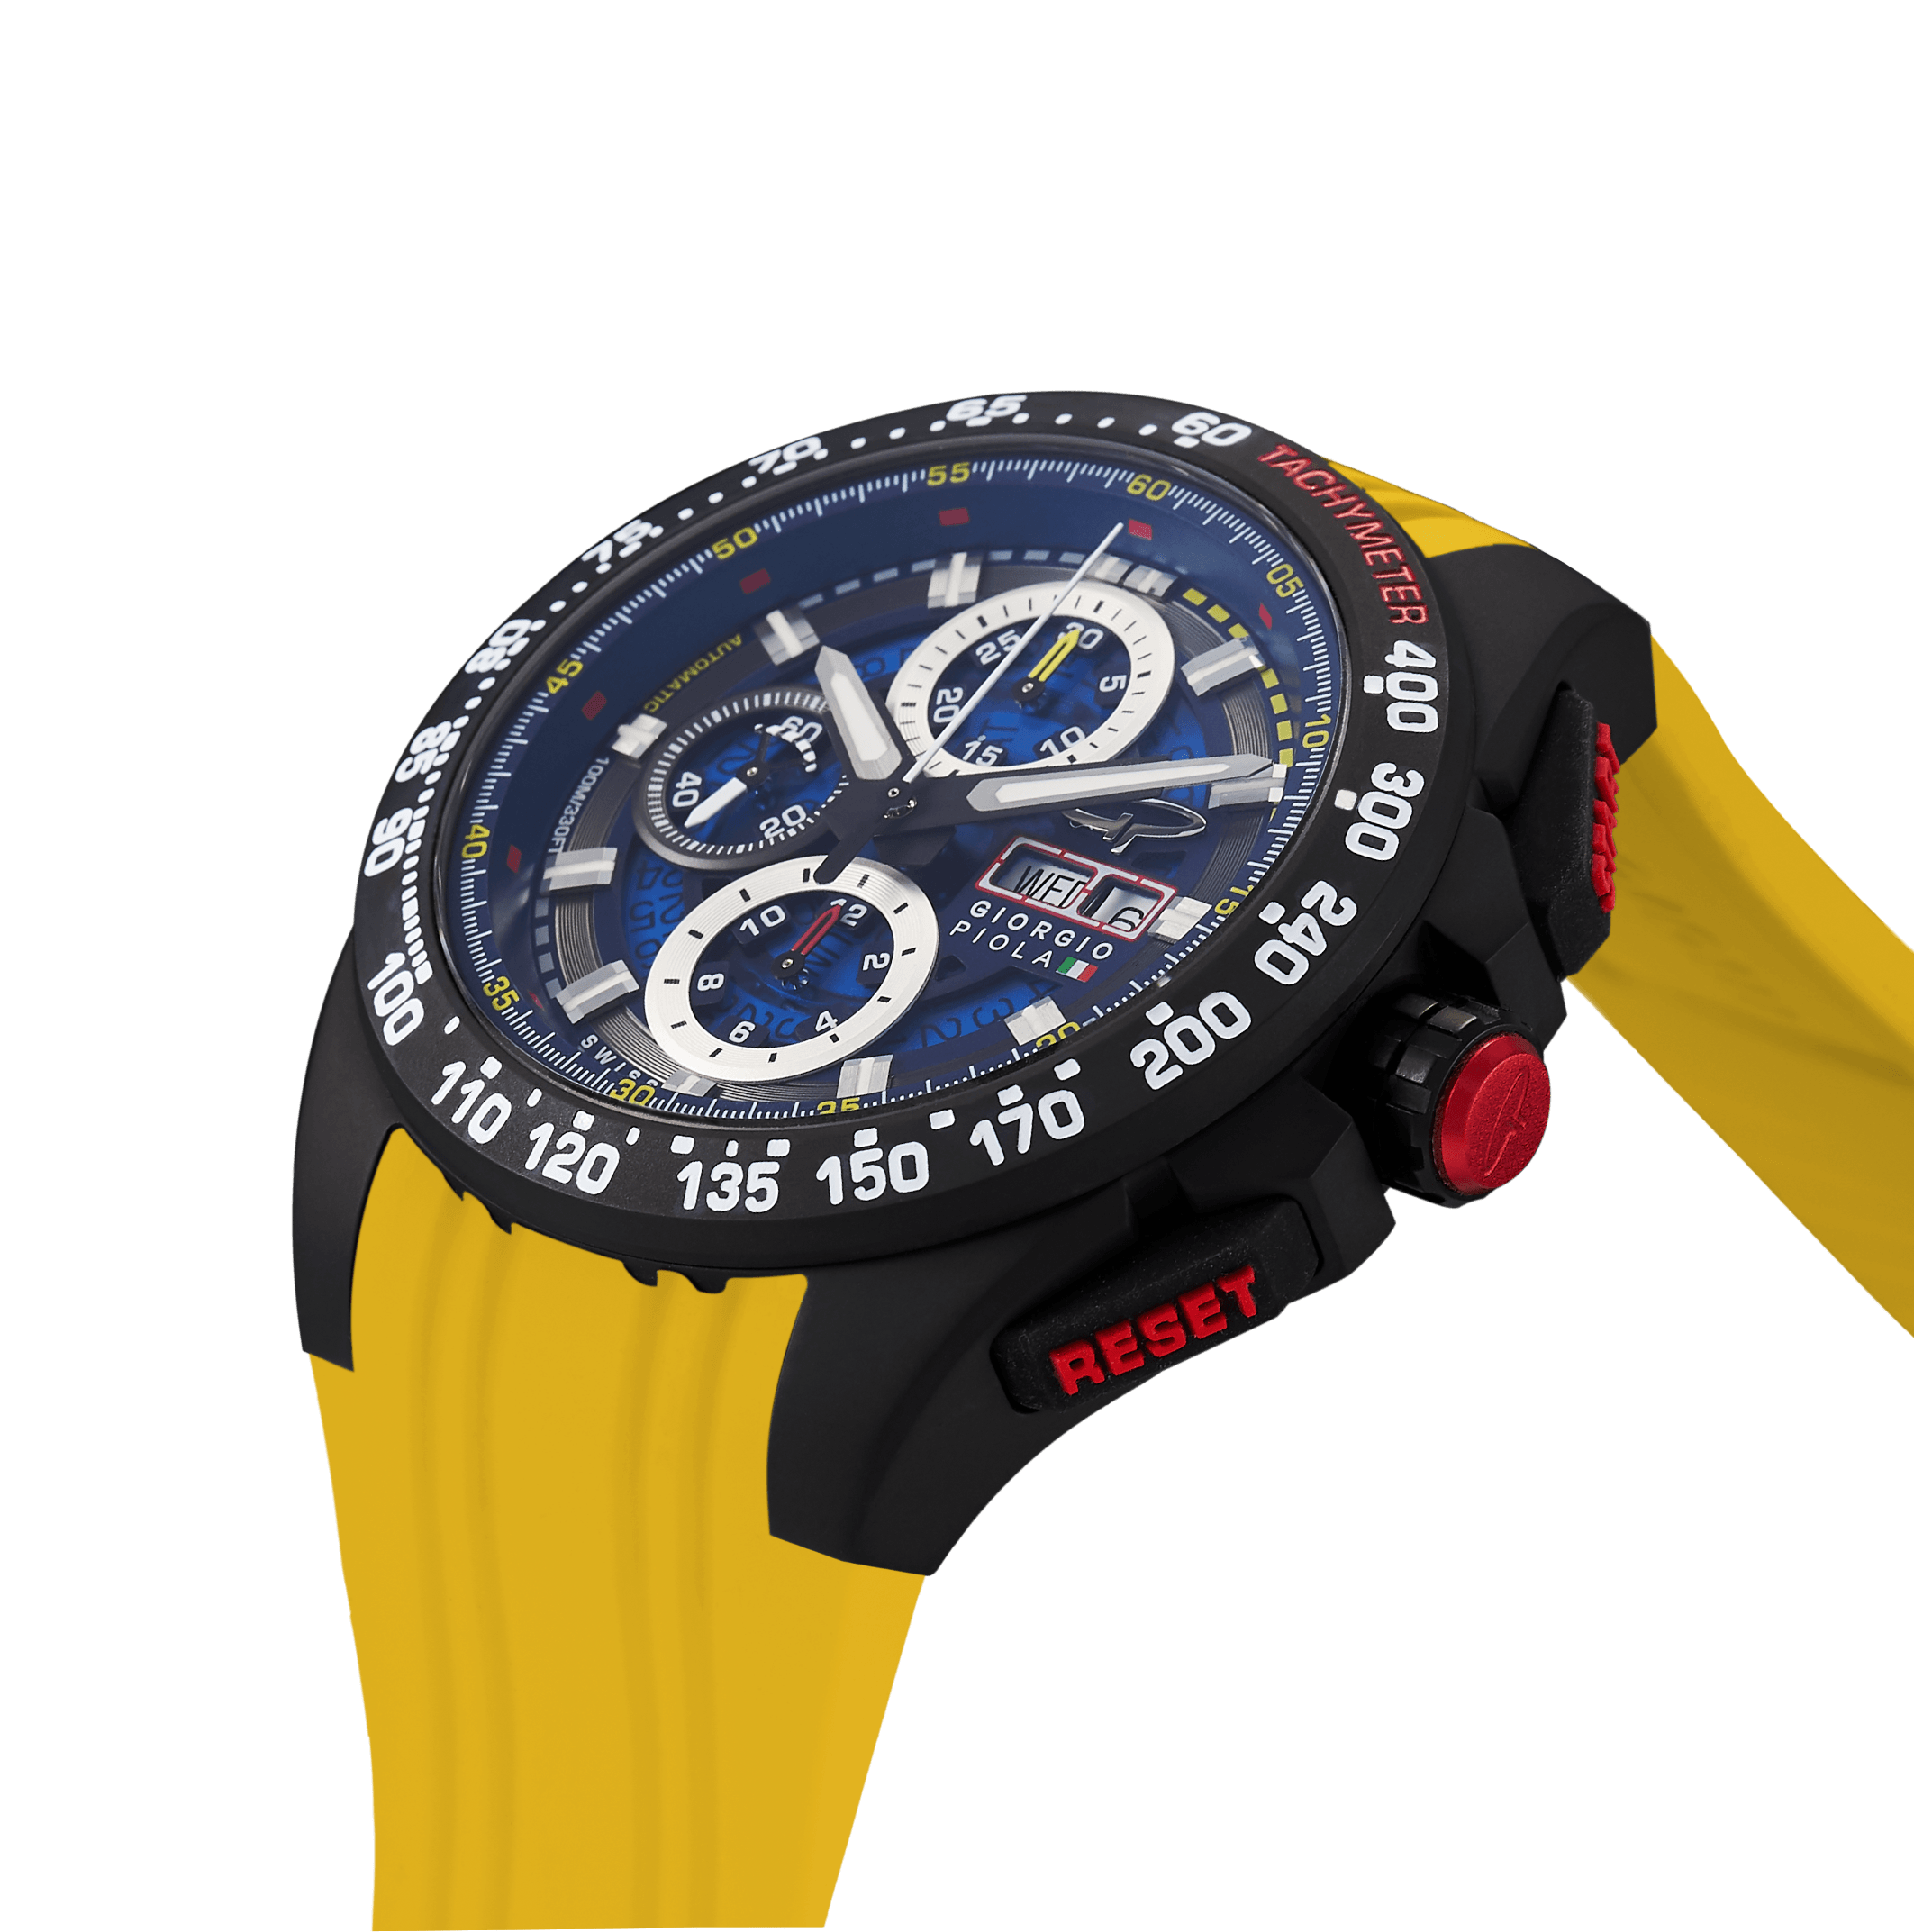 G5 Delta - Black-Yellow Automatic Titanium Swiss Sport Chrono Watch (Black PVD Coating)